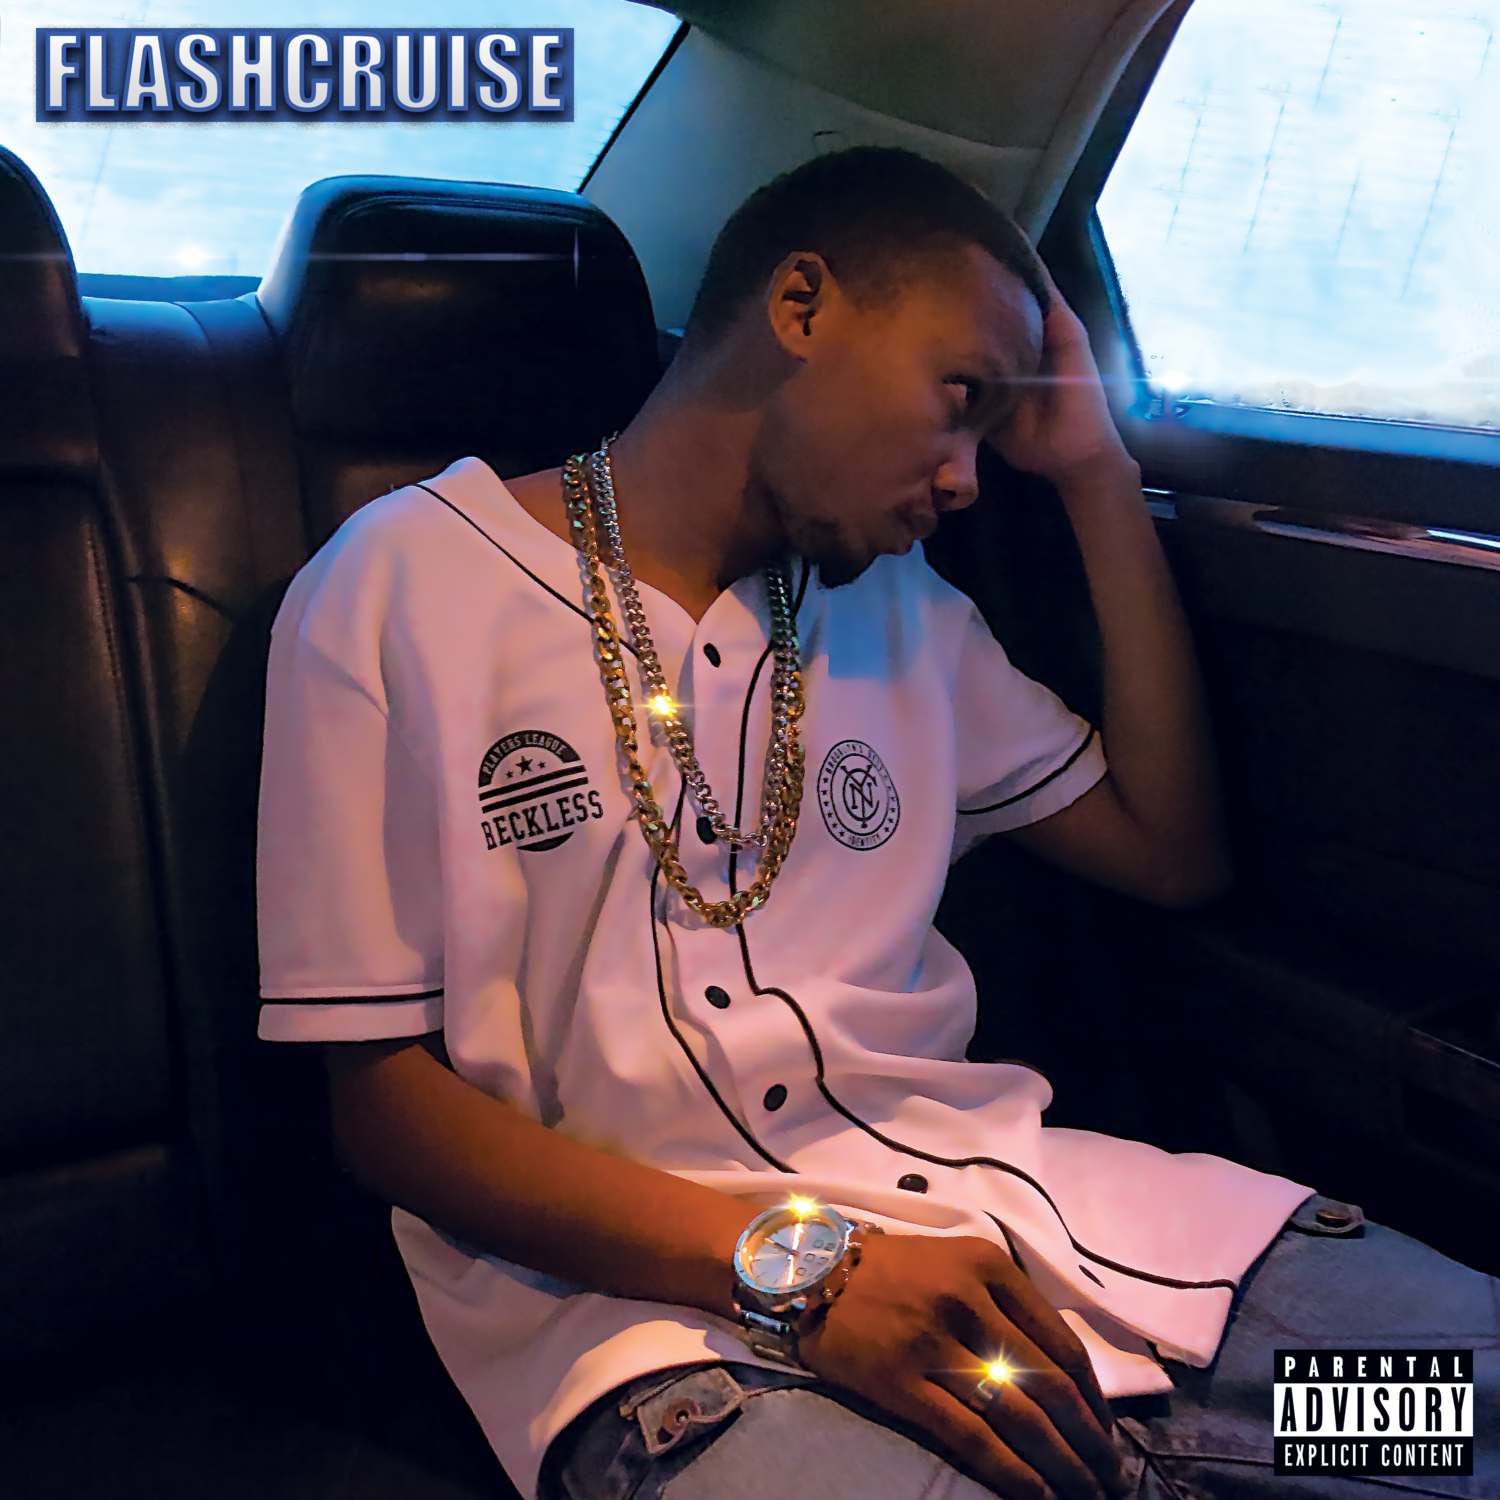 Flashcruise - Reckless